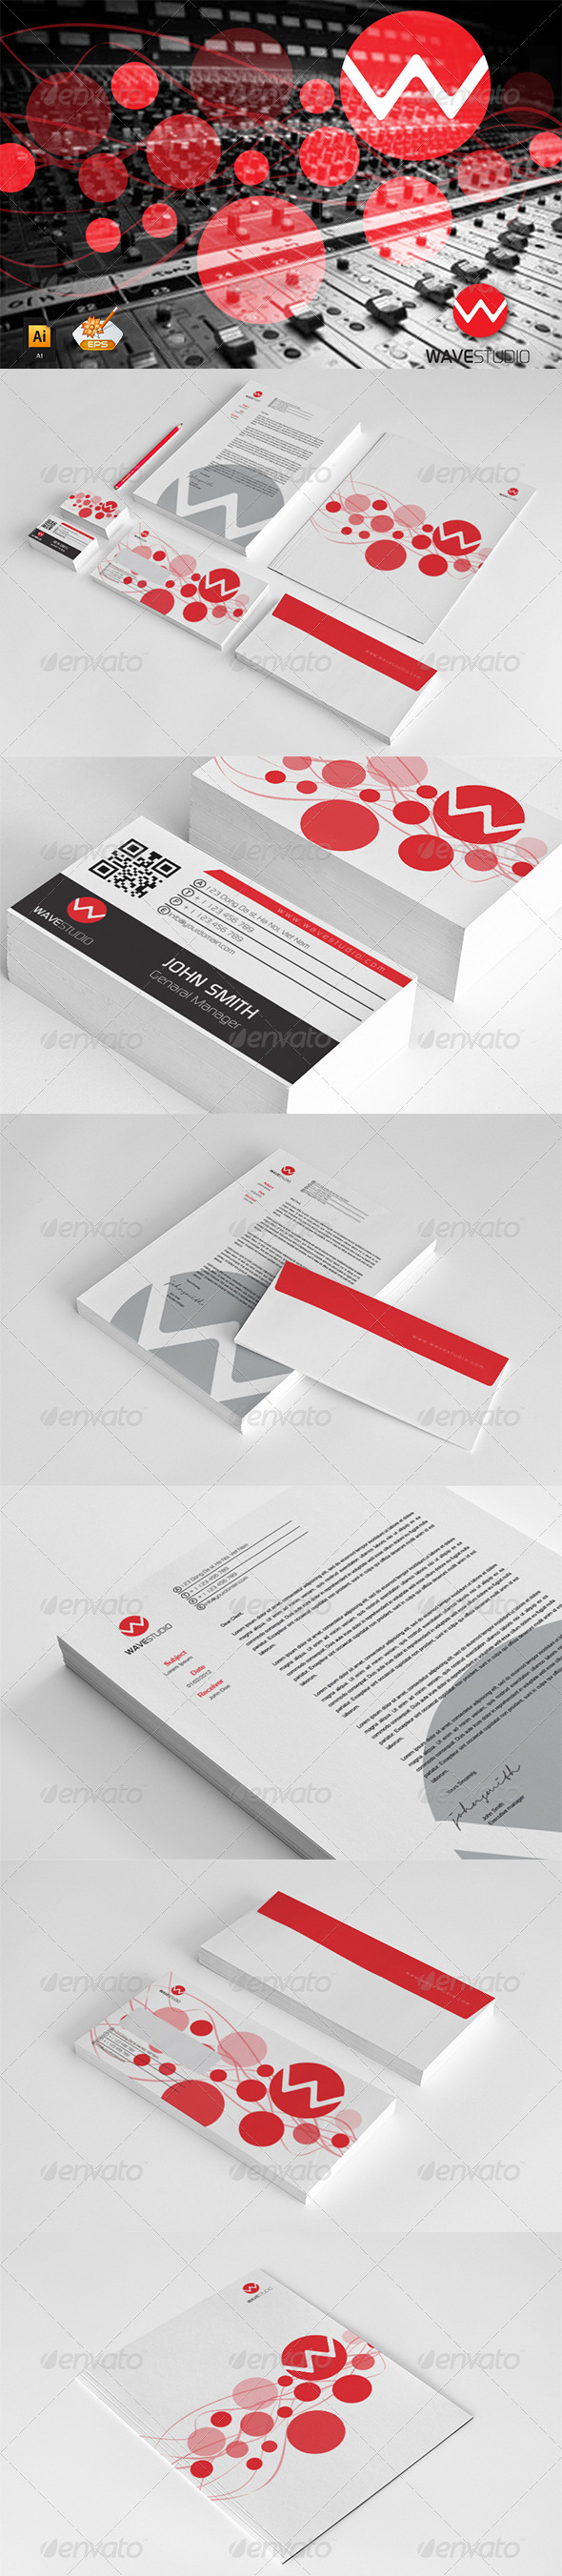 Corporate Startioney Wave Studio - Stationery Print Templates